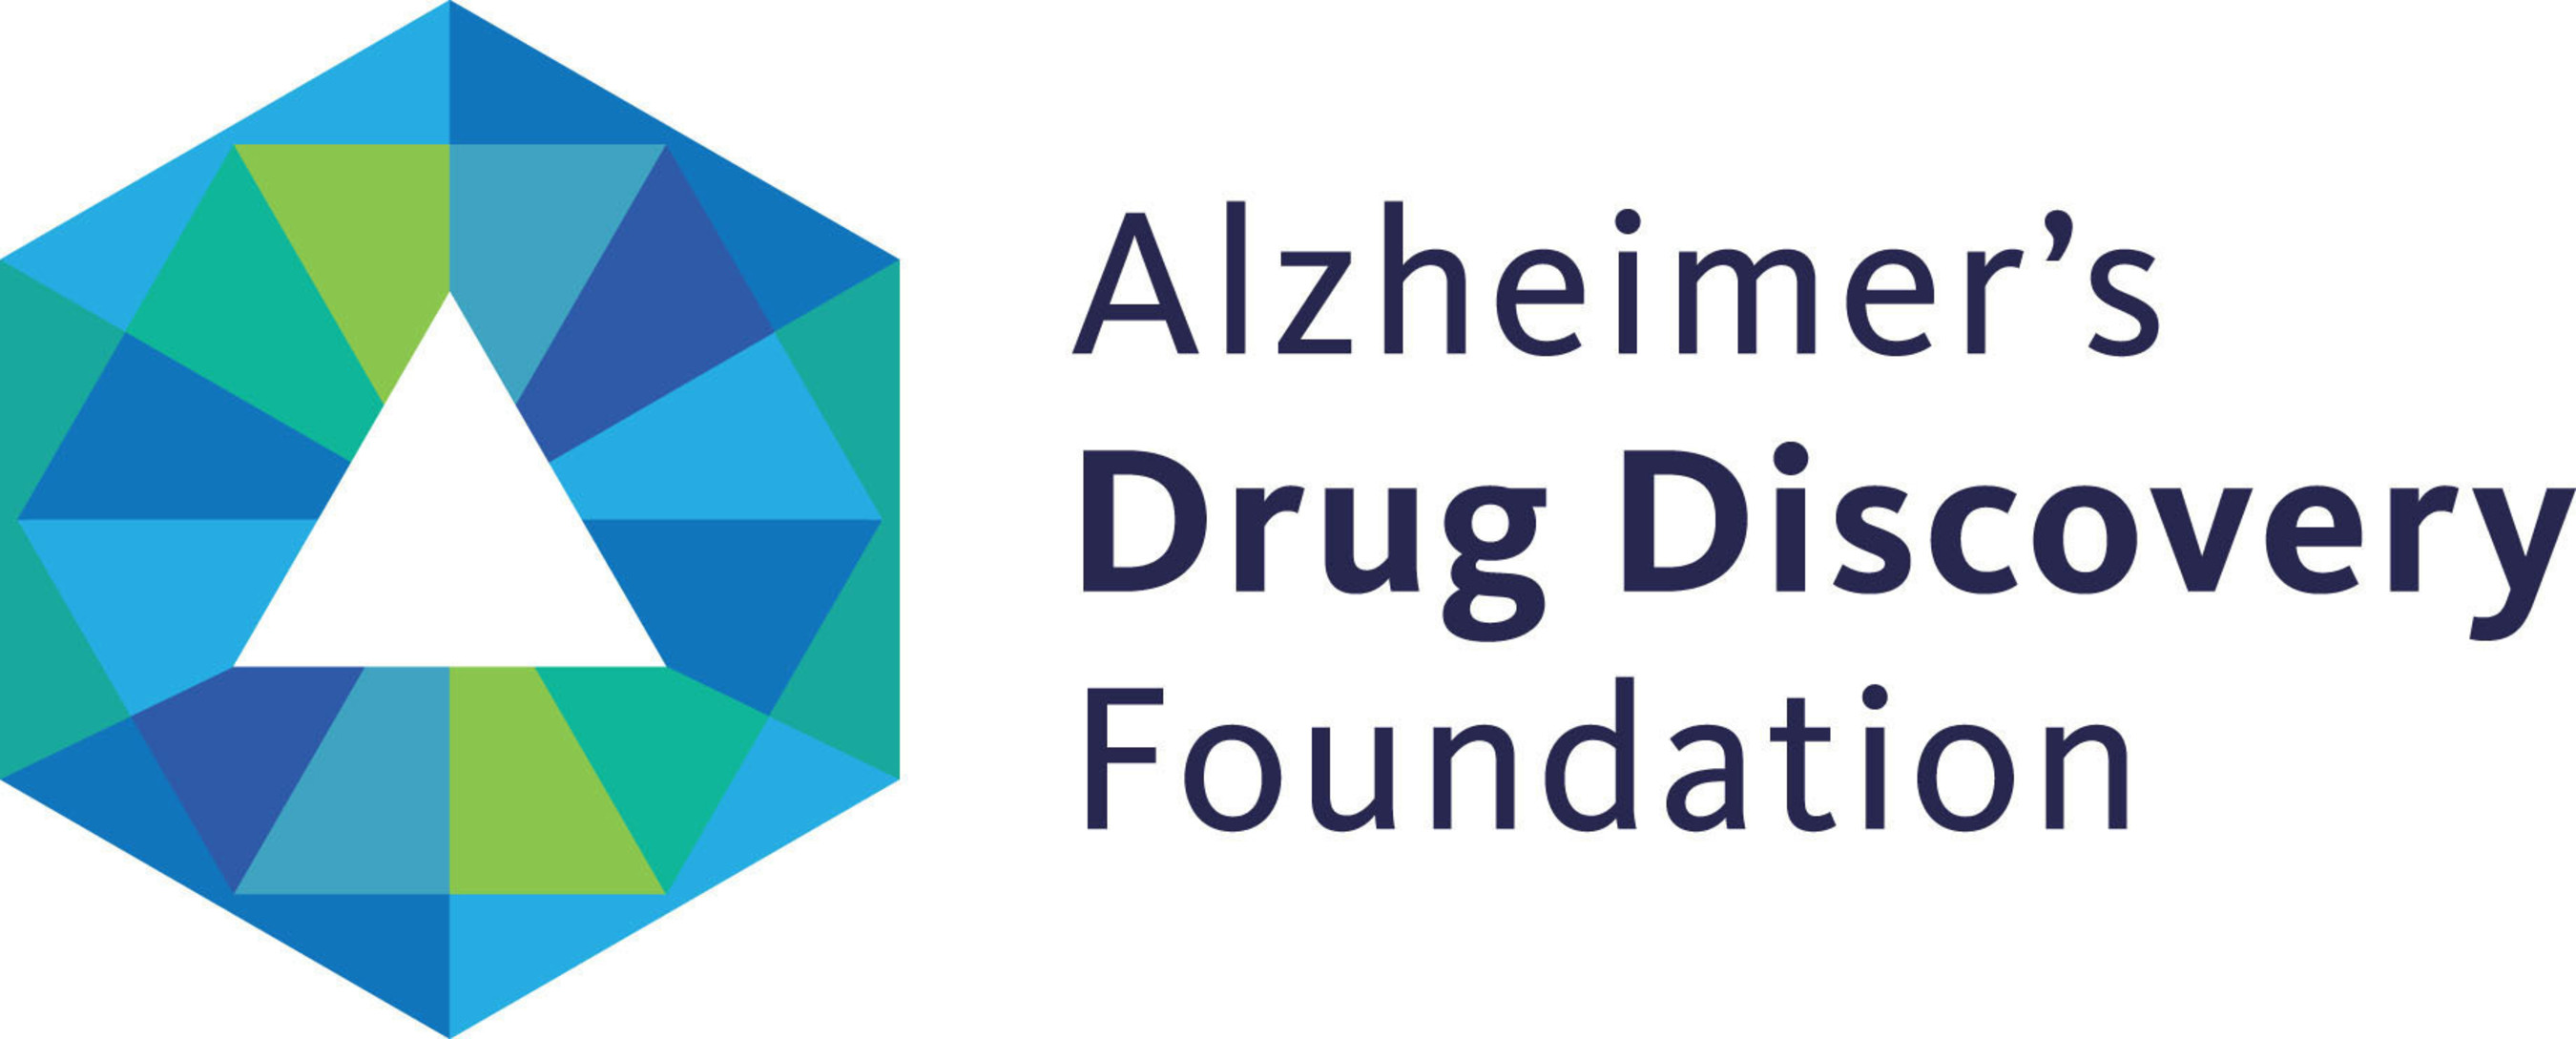 Alzheimer's Drug Discovery Foundation.